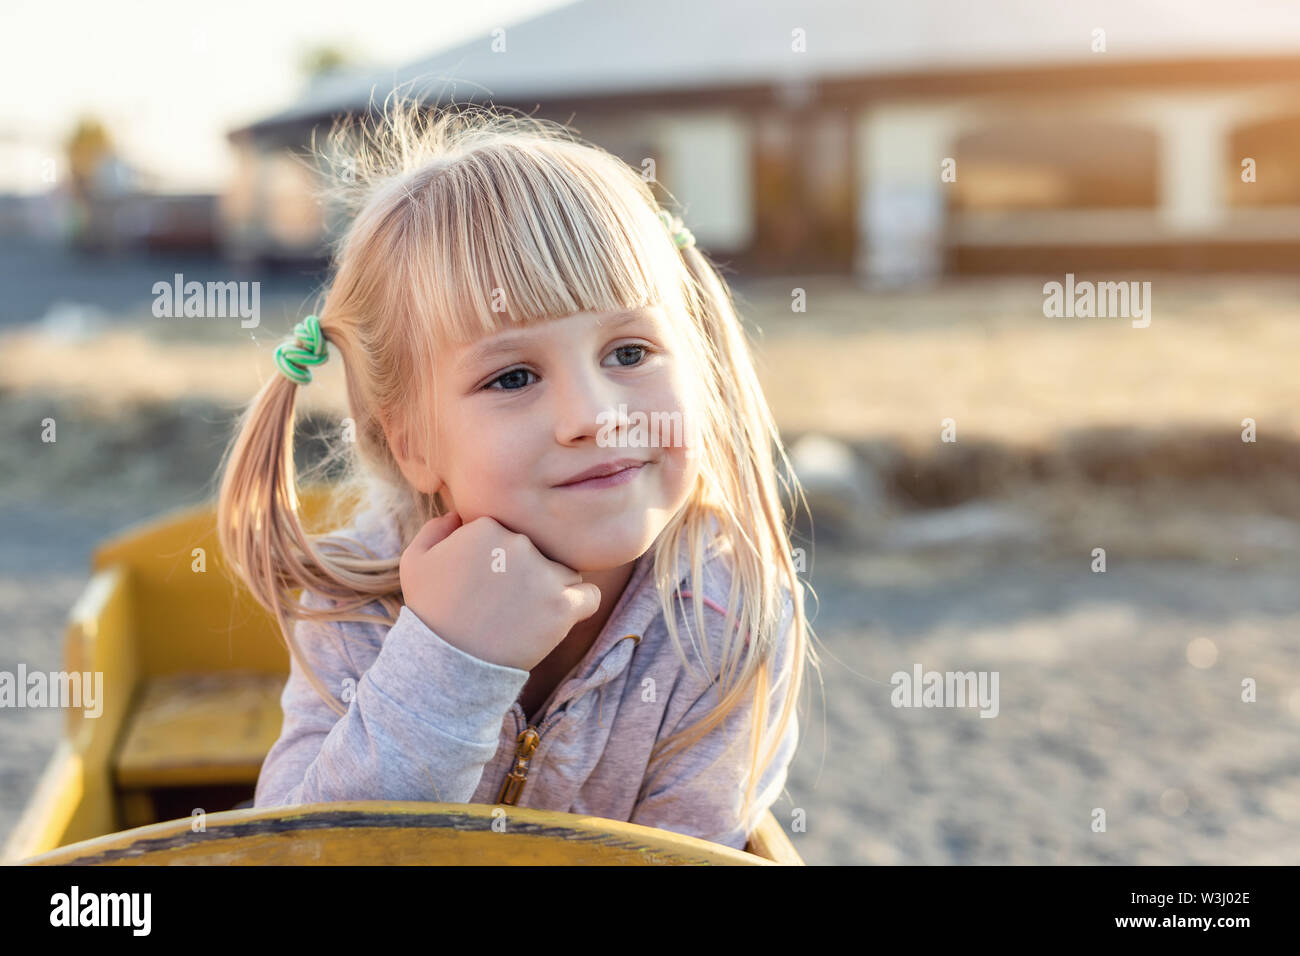 Adorable cute caucasian blond kid girl portrait sitting in wooden cart, looking aside and dreaming at farm or park during warm autumn evening Stock Photo